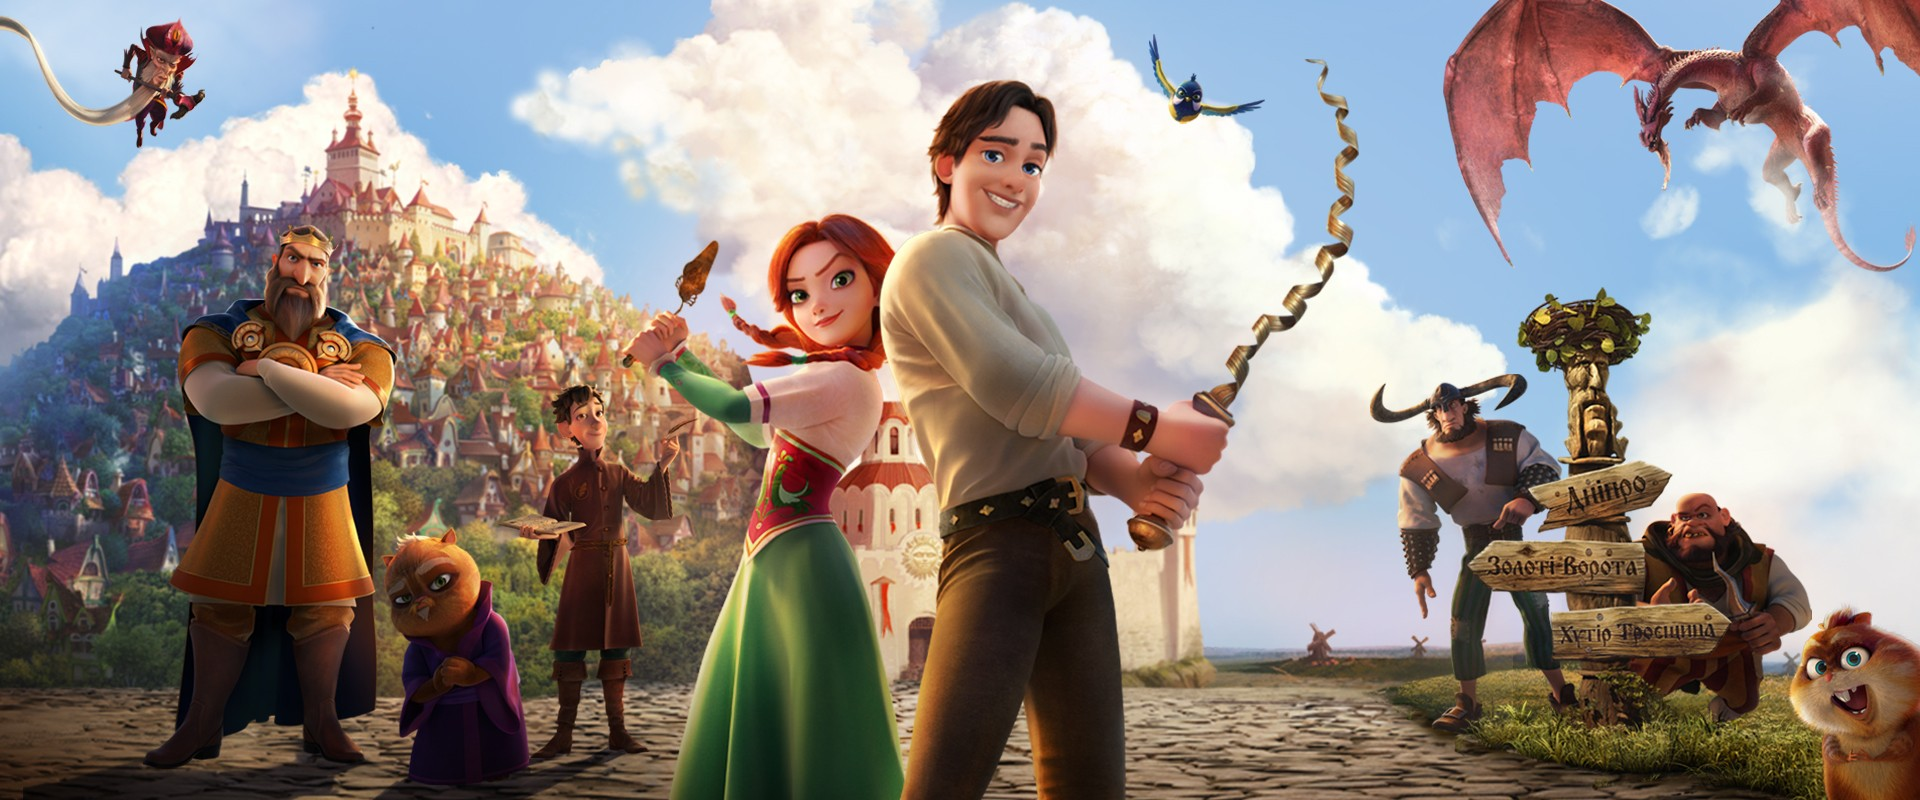 فيلم The Stolen Princess: Ruslan and Ludmila